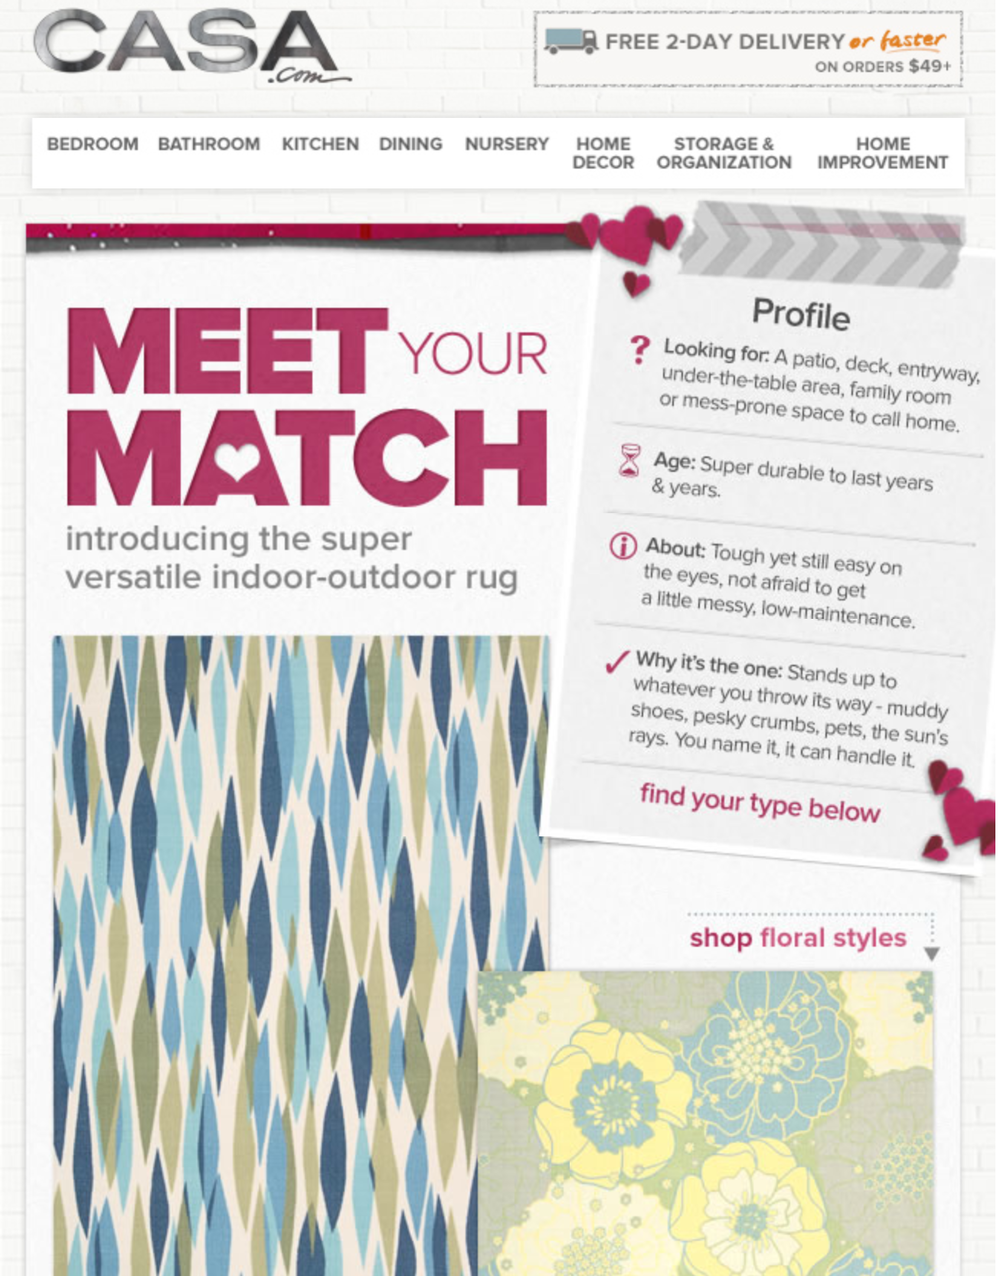 Email: Meet Your Match